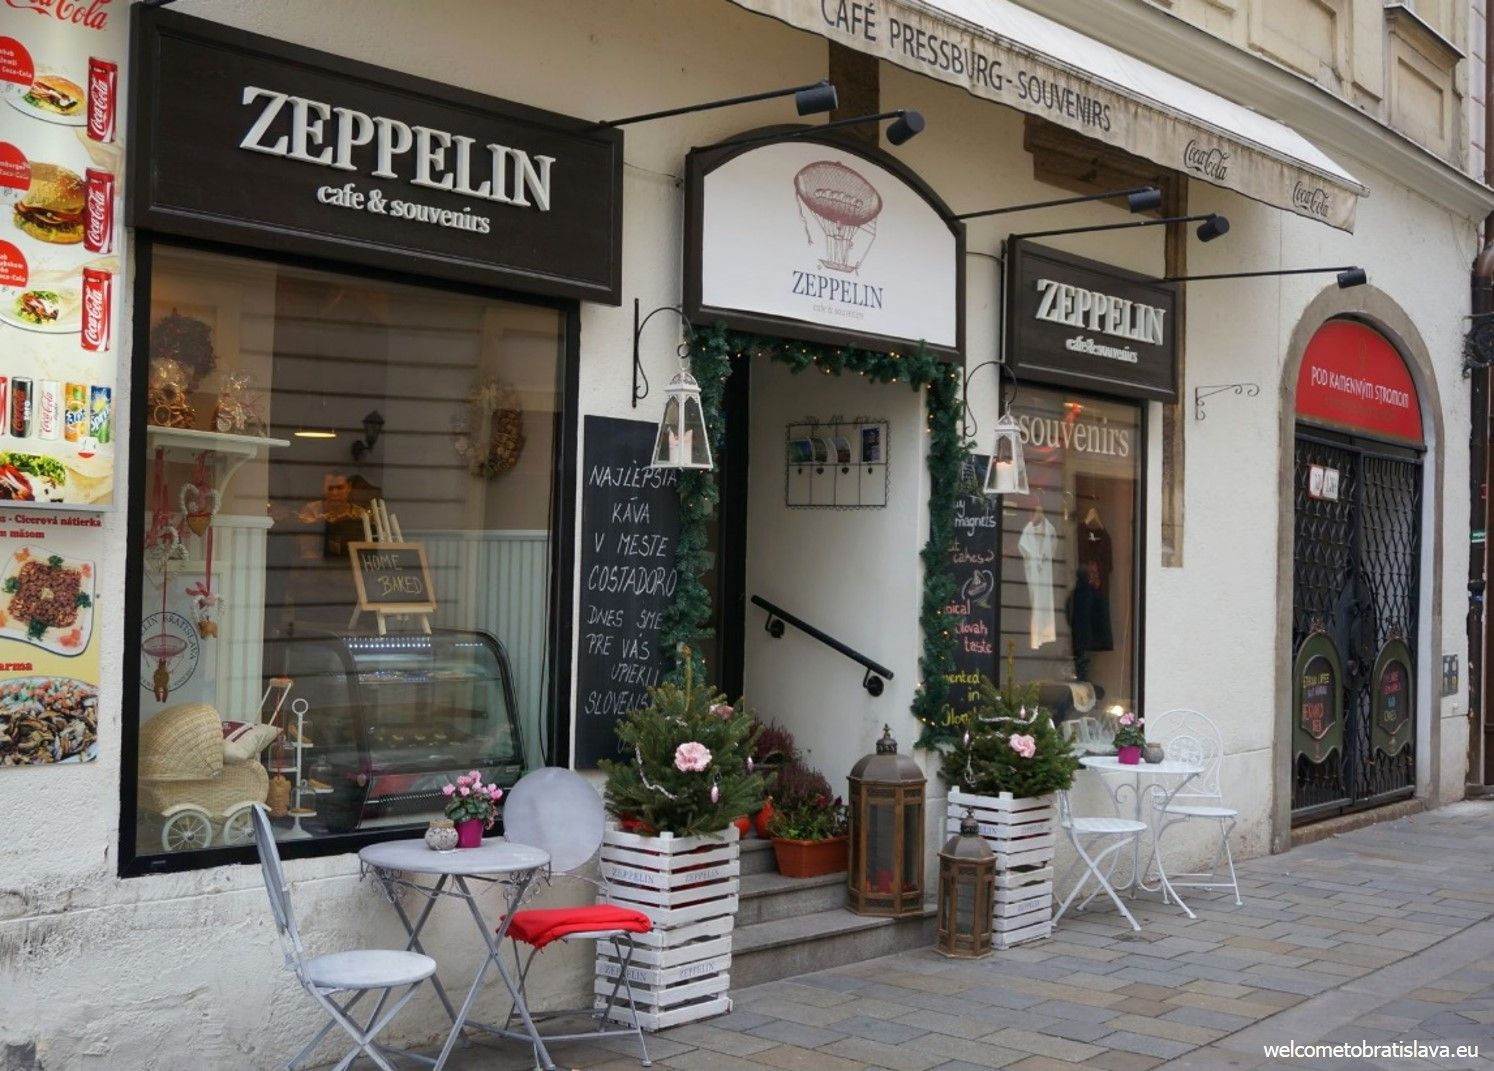 Zeppelin Cafe